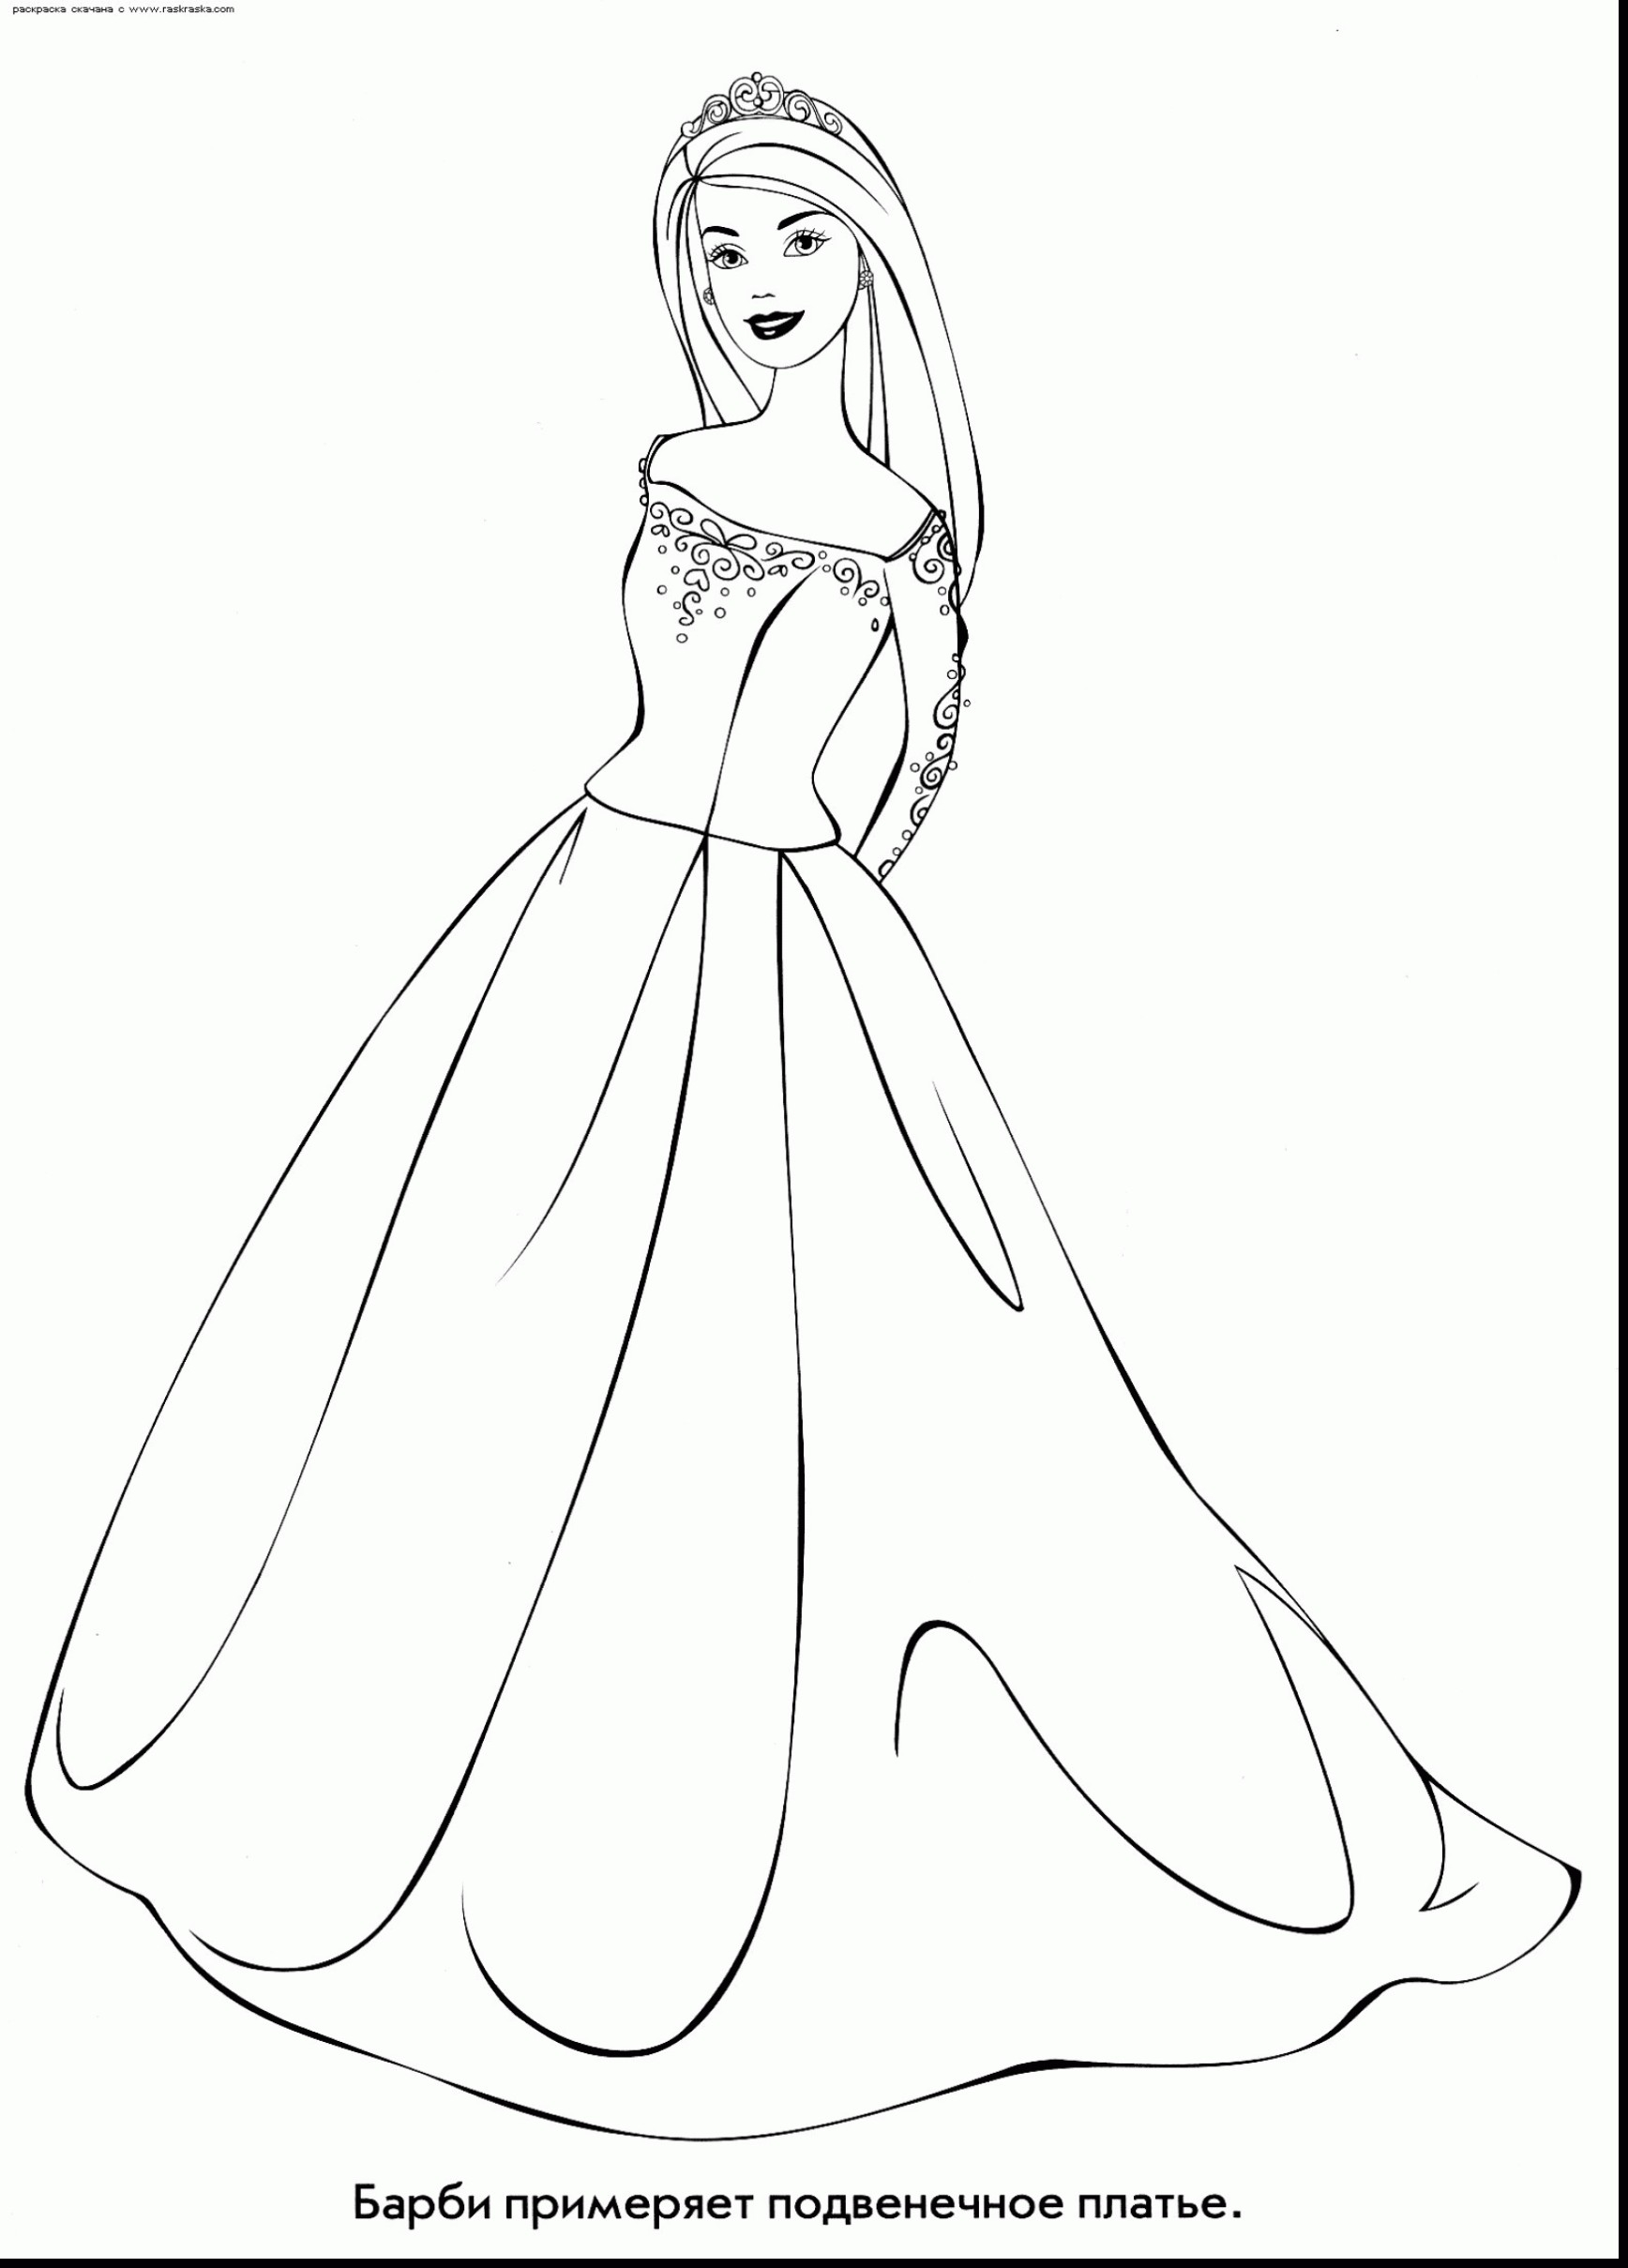 coloring pages of dresses dress coloring pages free printable dress coloring pages pages of dresses coloring